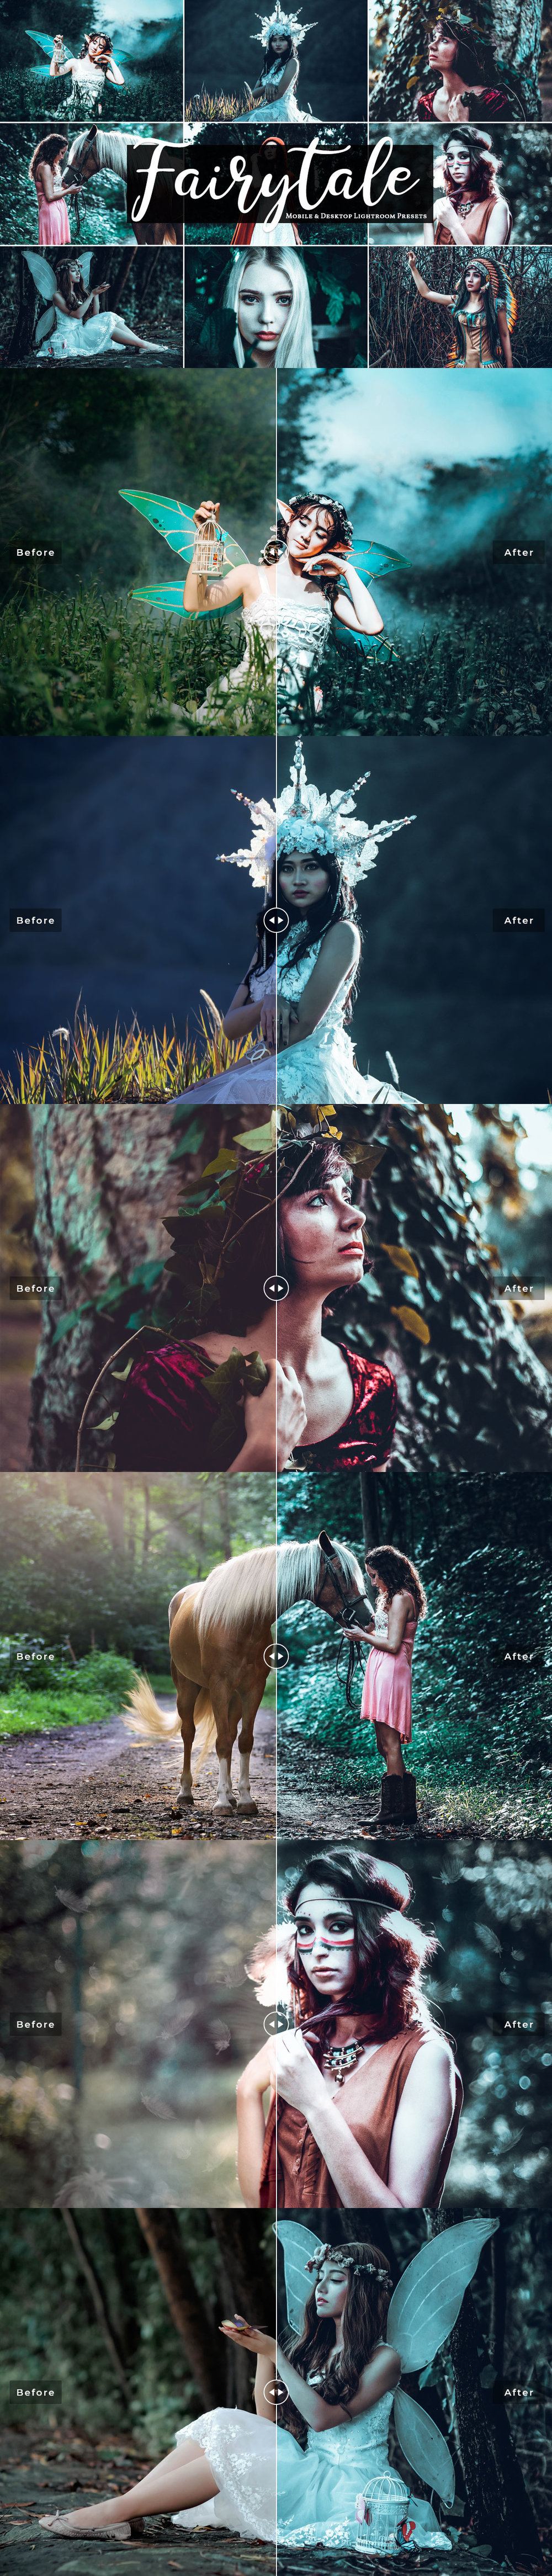 Fairytale Mobile and Desktop Free Lightroom Preset will create dark fairy tale look effect in your portraits in perfect finishing touch with just in one click. Every preset is fully editable, so you can perfect your photo artwork just as you envision it.